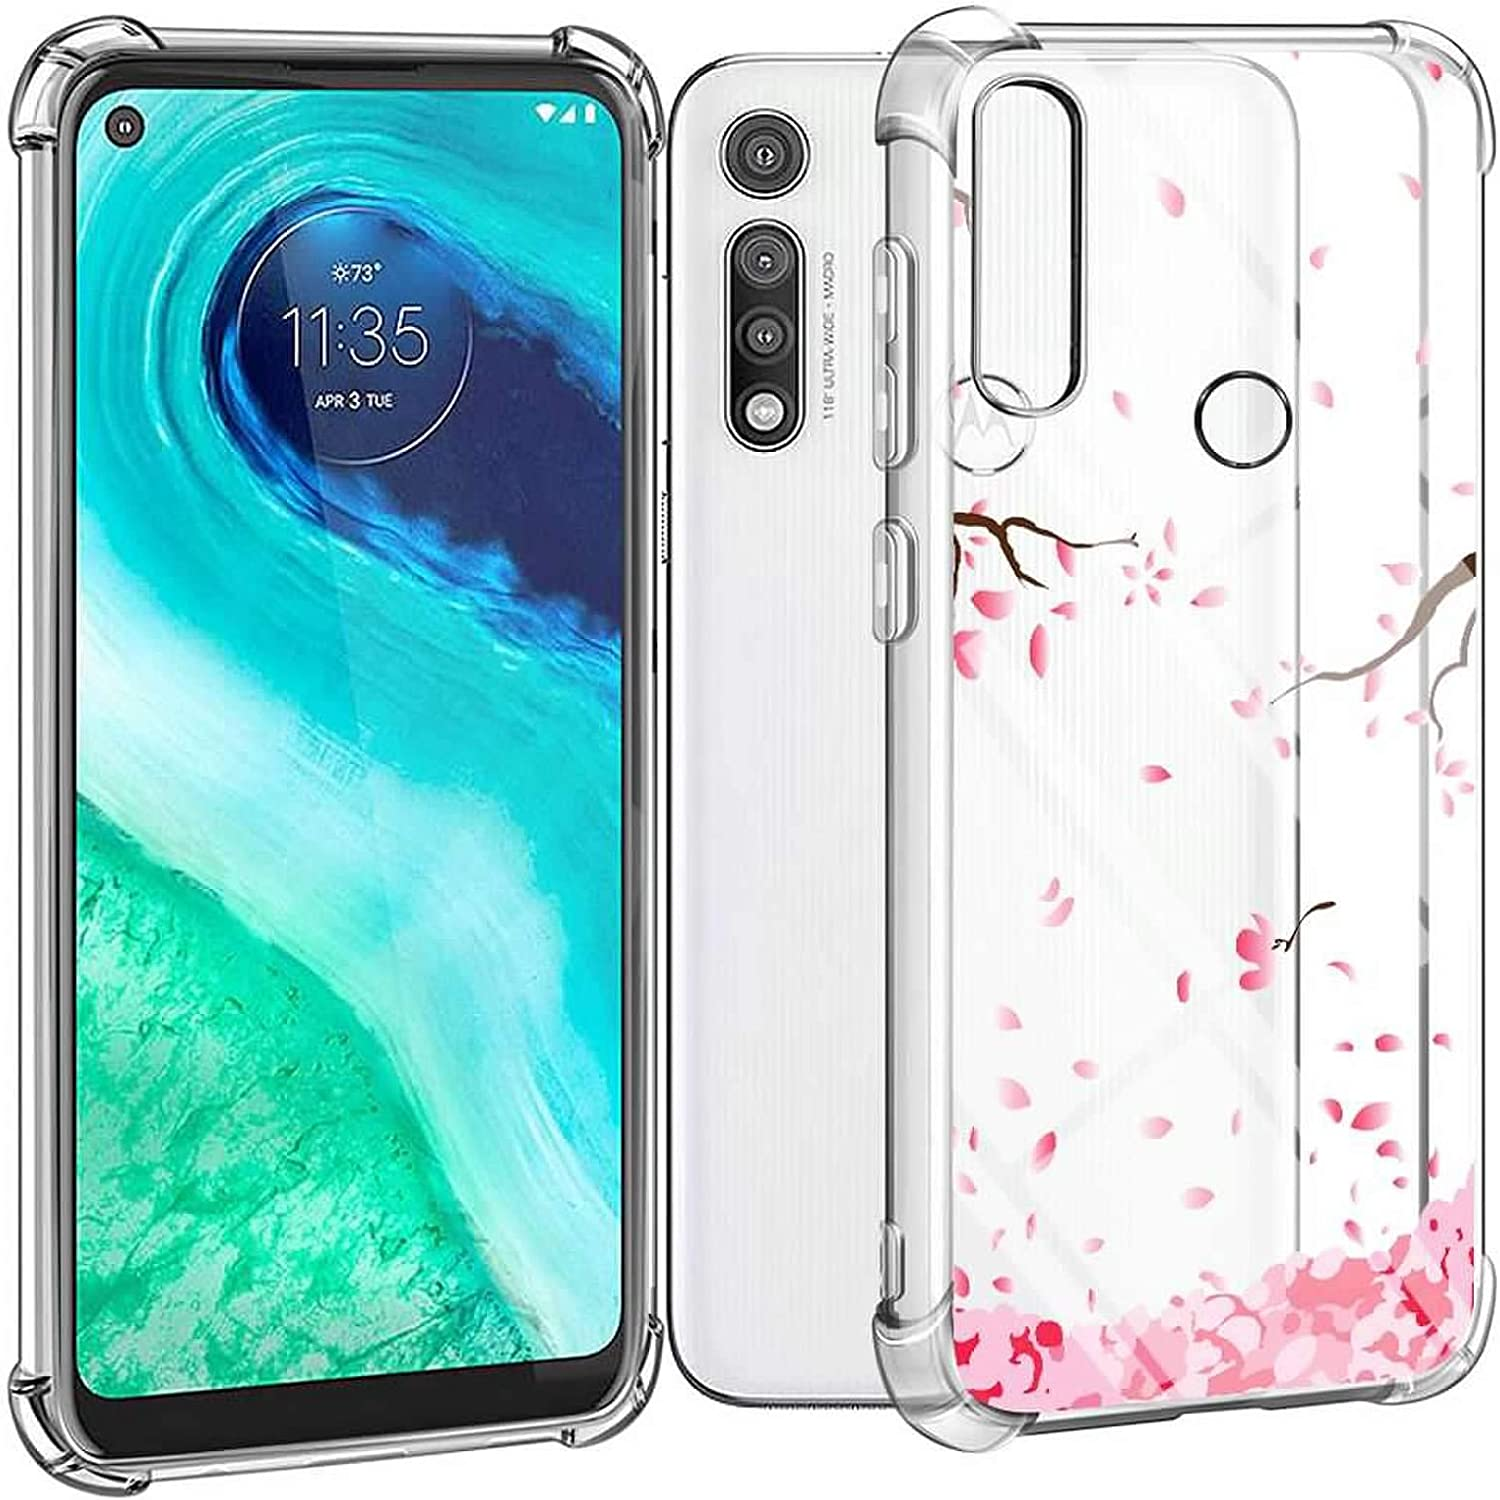 Motorola G Fast Pink Petals Case for Girls Women with Tempered Glass Screen Protector Crystal Clear Shockproof Protective Phone Cover for Motorola Moto G Fast 2020 for Moto G Fast Case 3 in 1